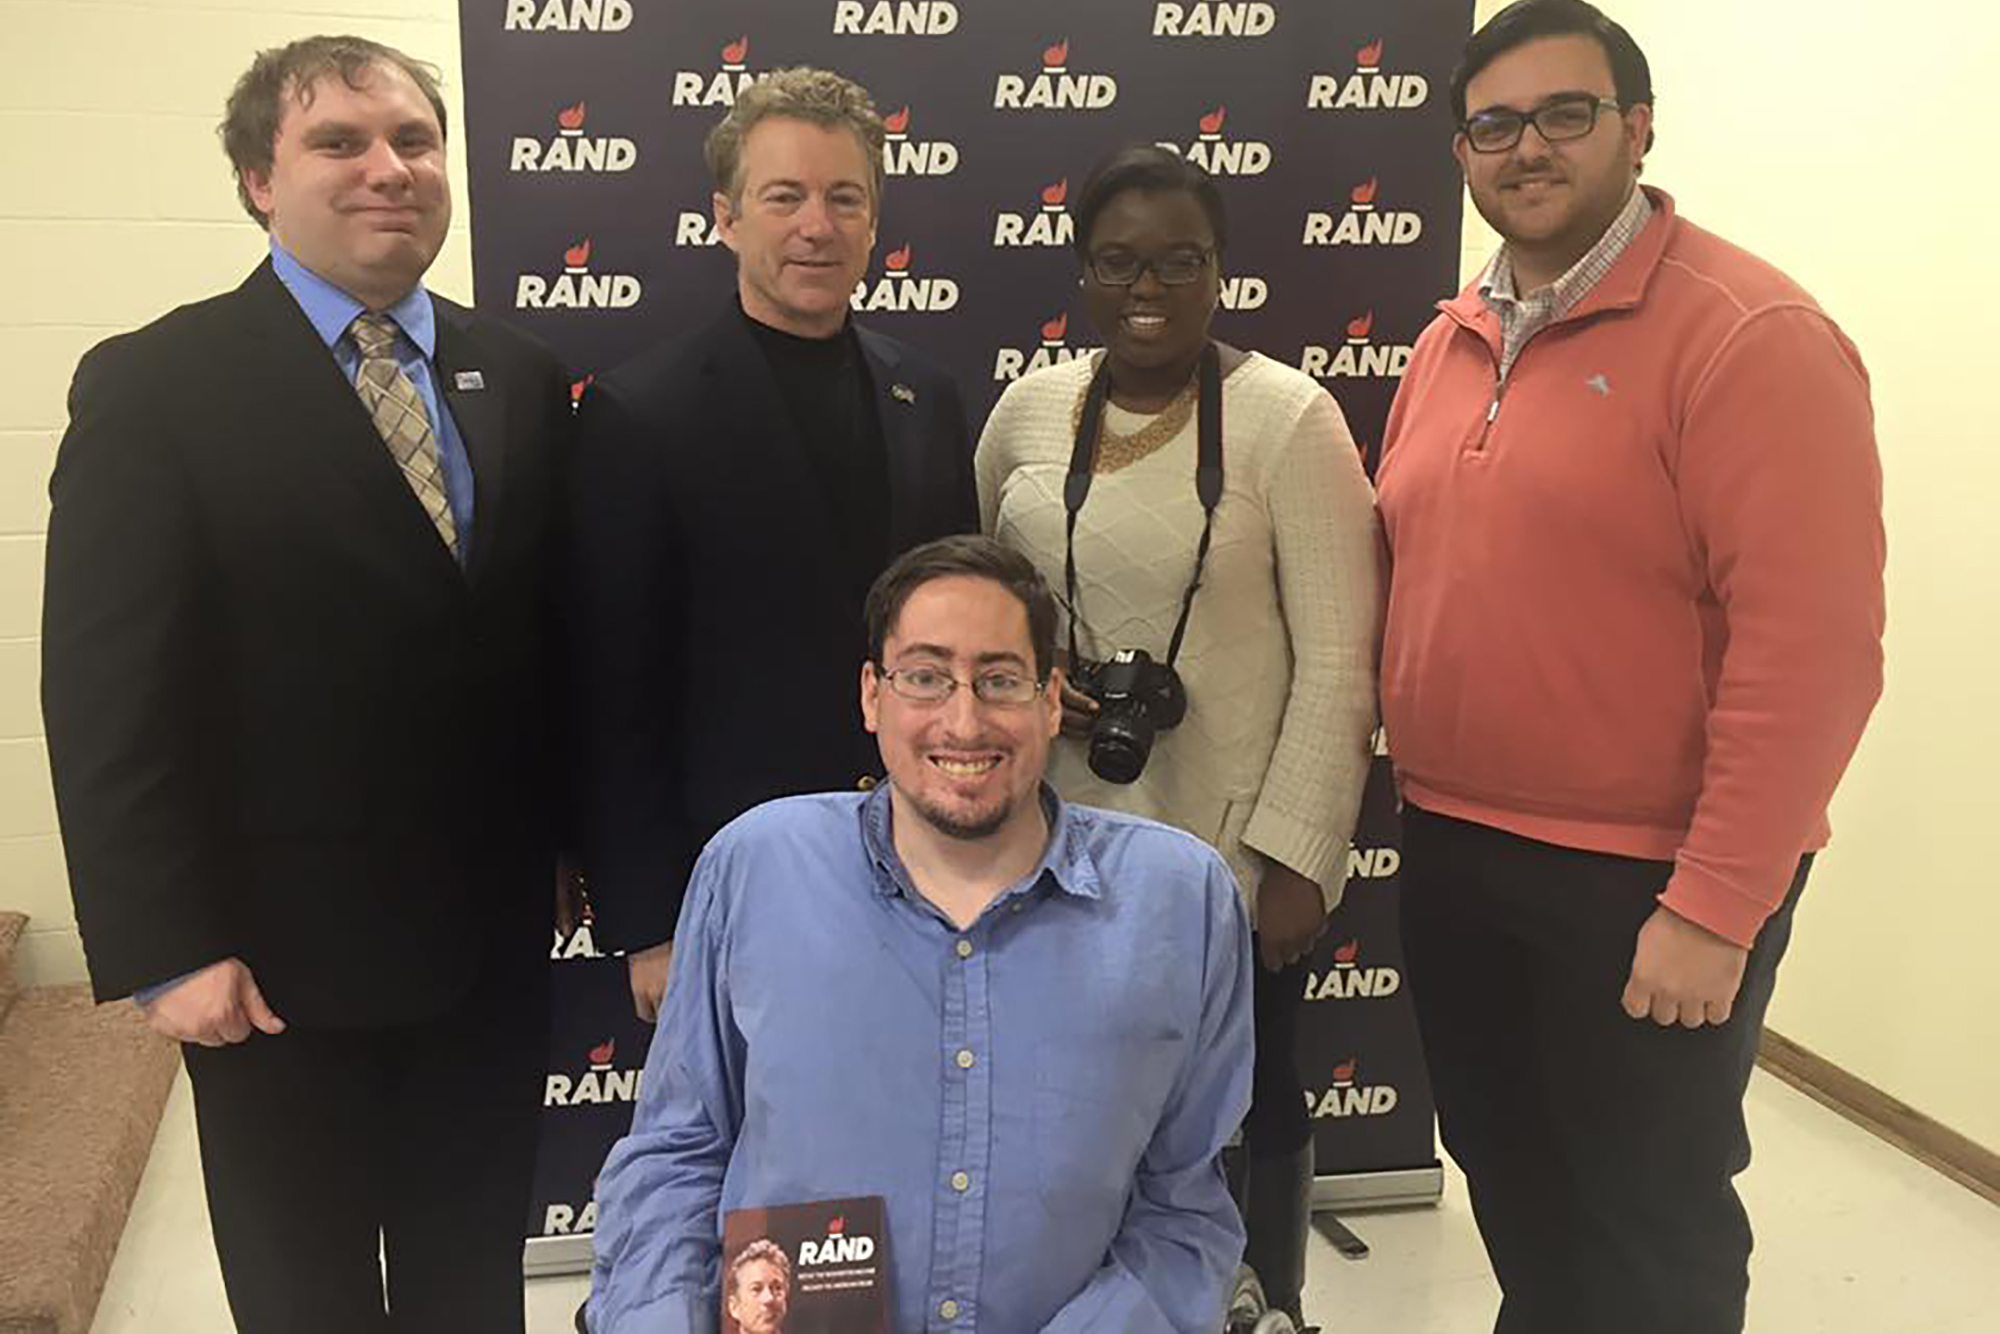 In January, James interviewed Sen. Rand Paul in New Hampshire.